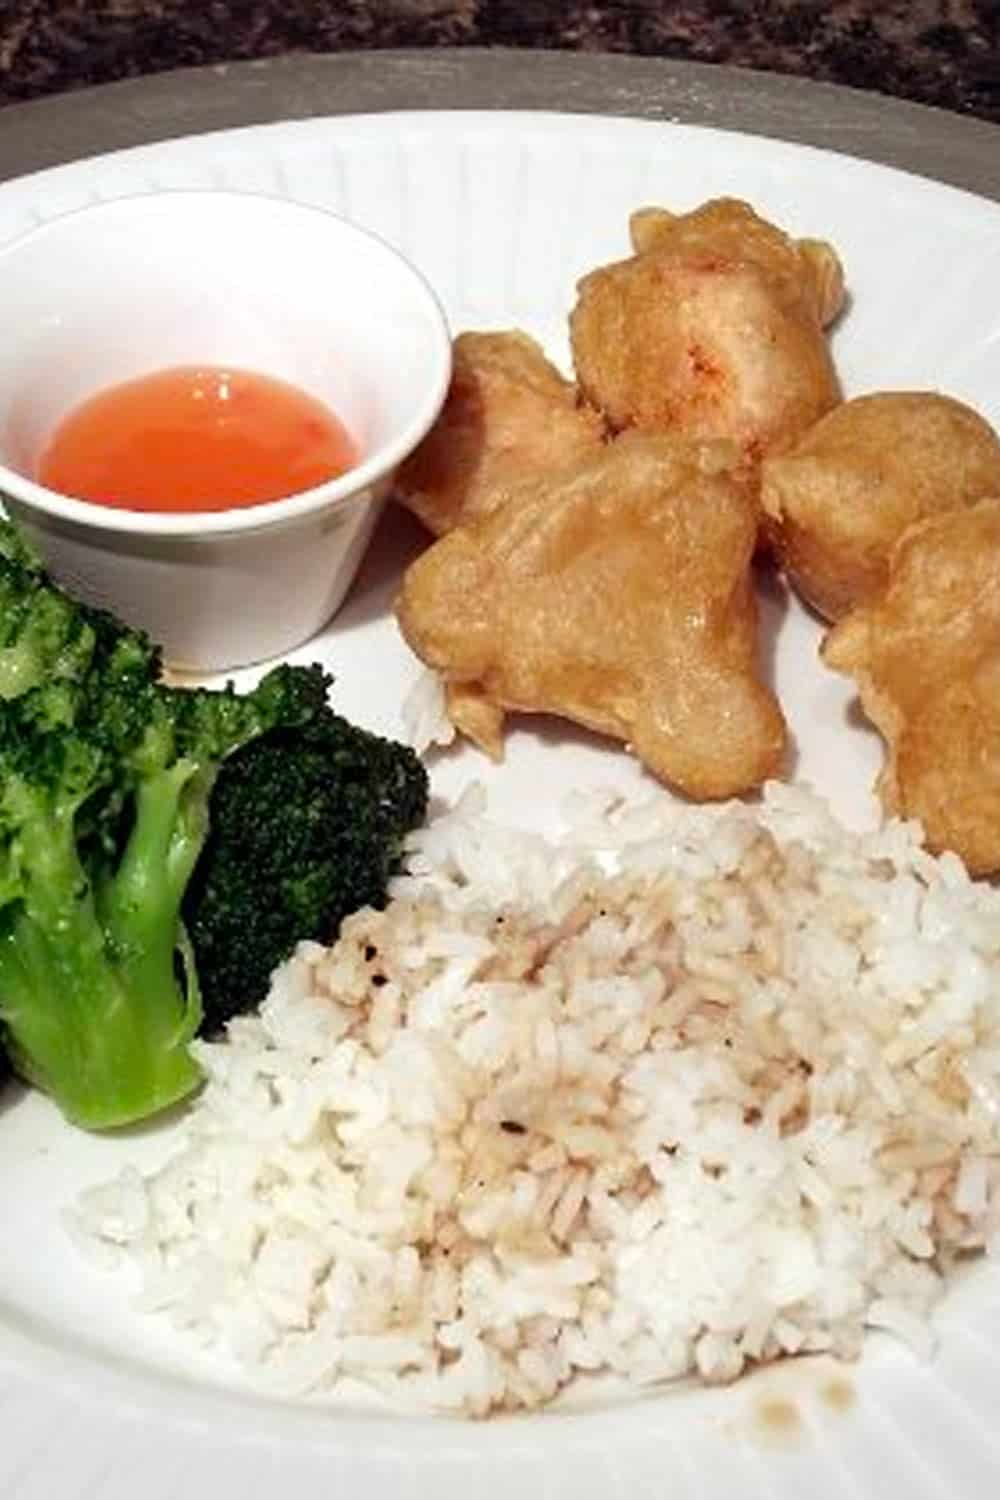 broccoli and chicken balls on a plate with rice